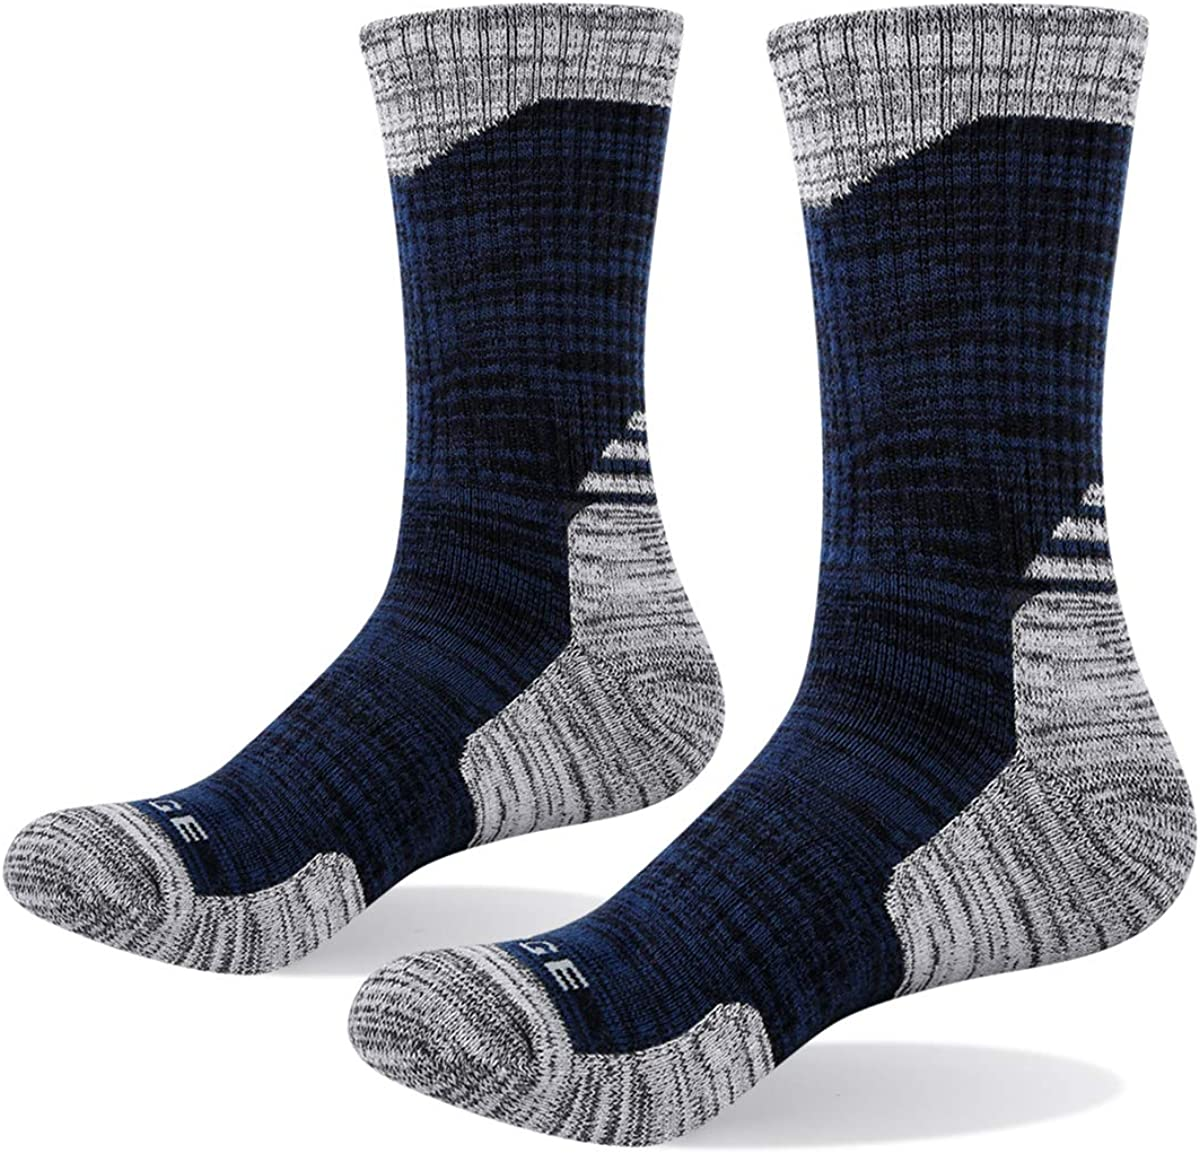 3 Pairs Pack YUEDGE Mens Breathable Cushion Cotton Athletic Crew Sports Hiking Walking Socks